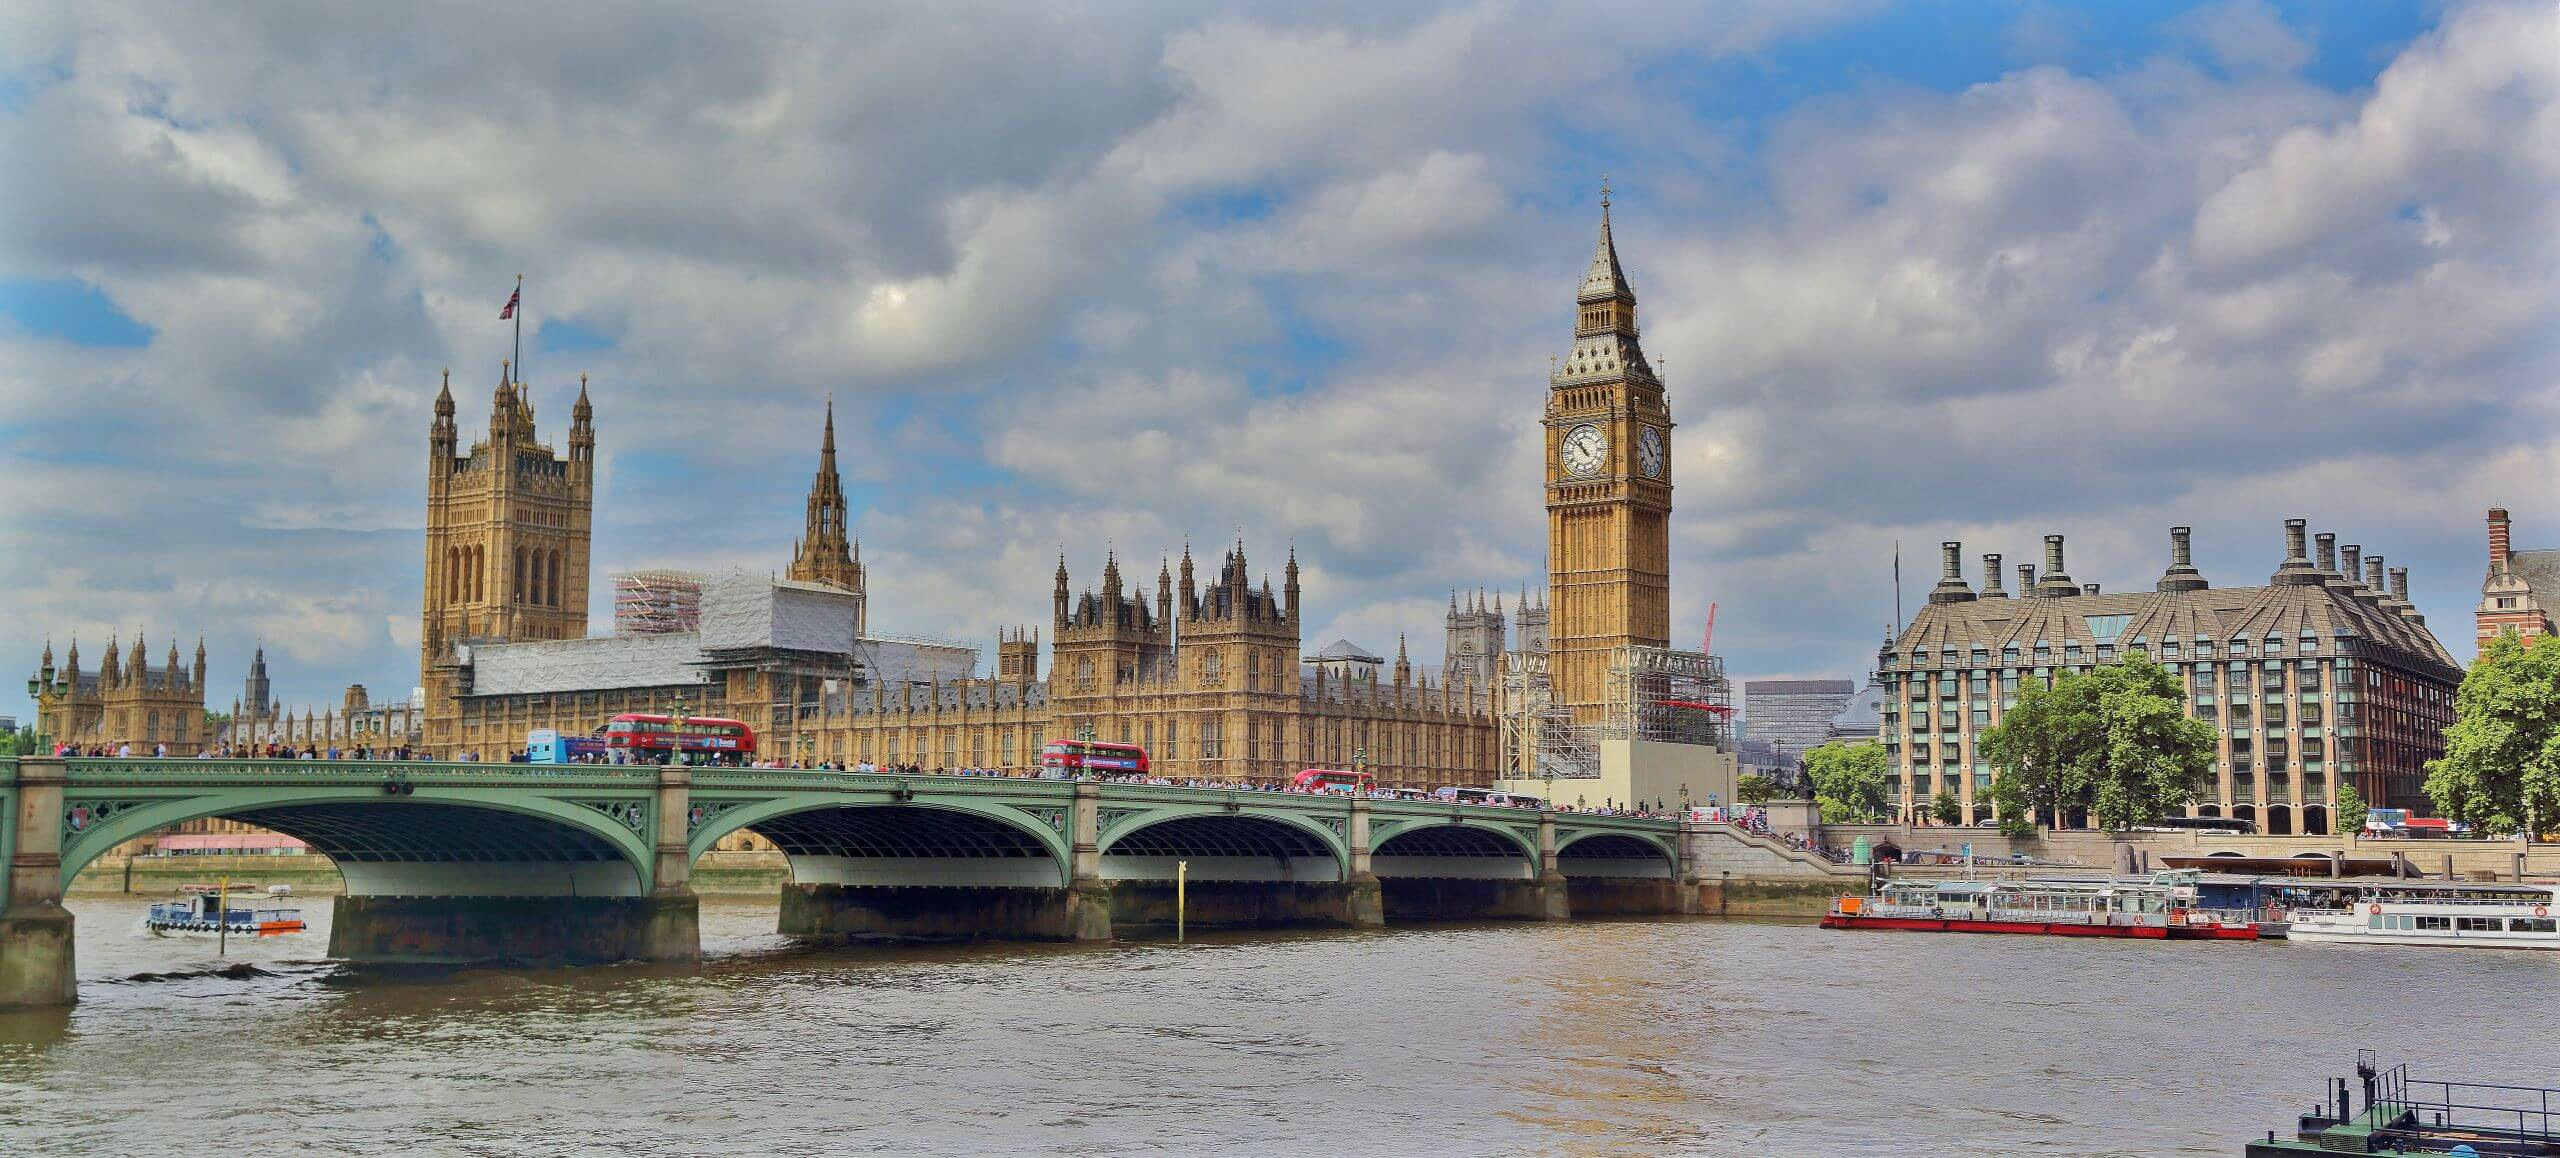 iew of Big Ben and the Houses of Parliament. Photo by Paddy Kumar on Unsplash